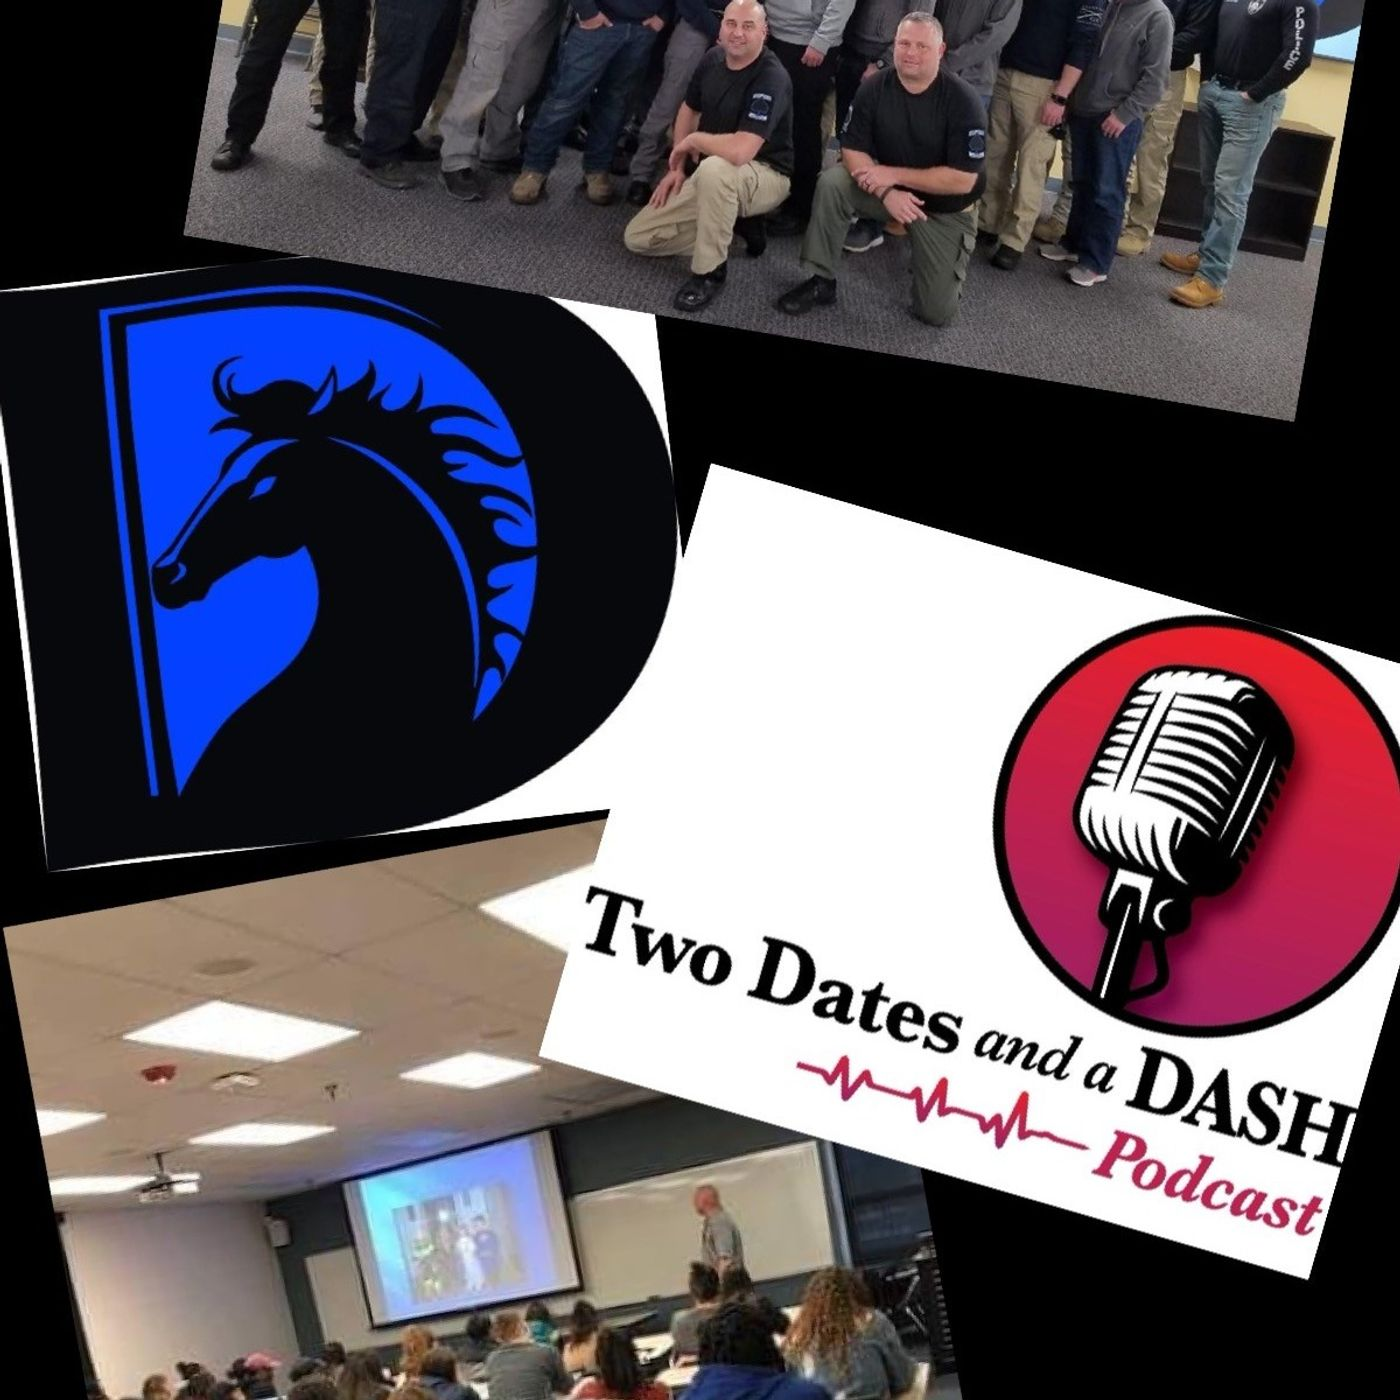 Two Dates and a Dash Podcast Episode 88: Career Cop and Founder of Dark Horse Law Enforcement Training, Russ Hittle